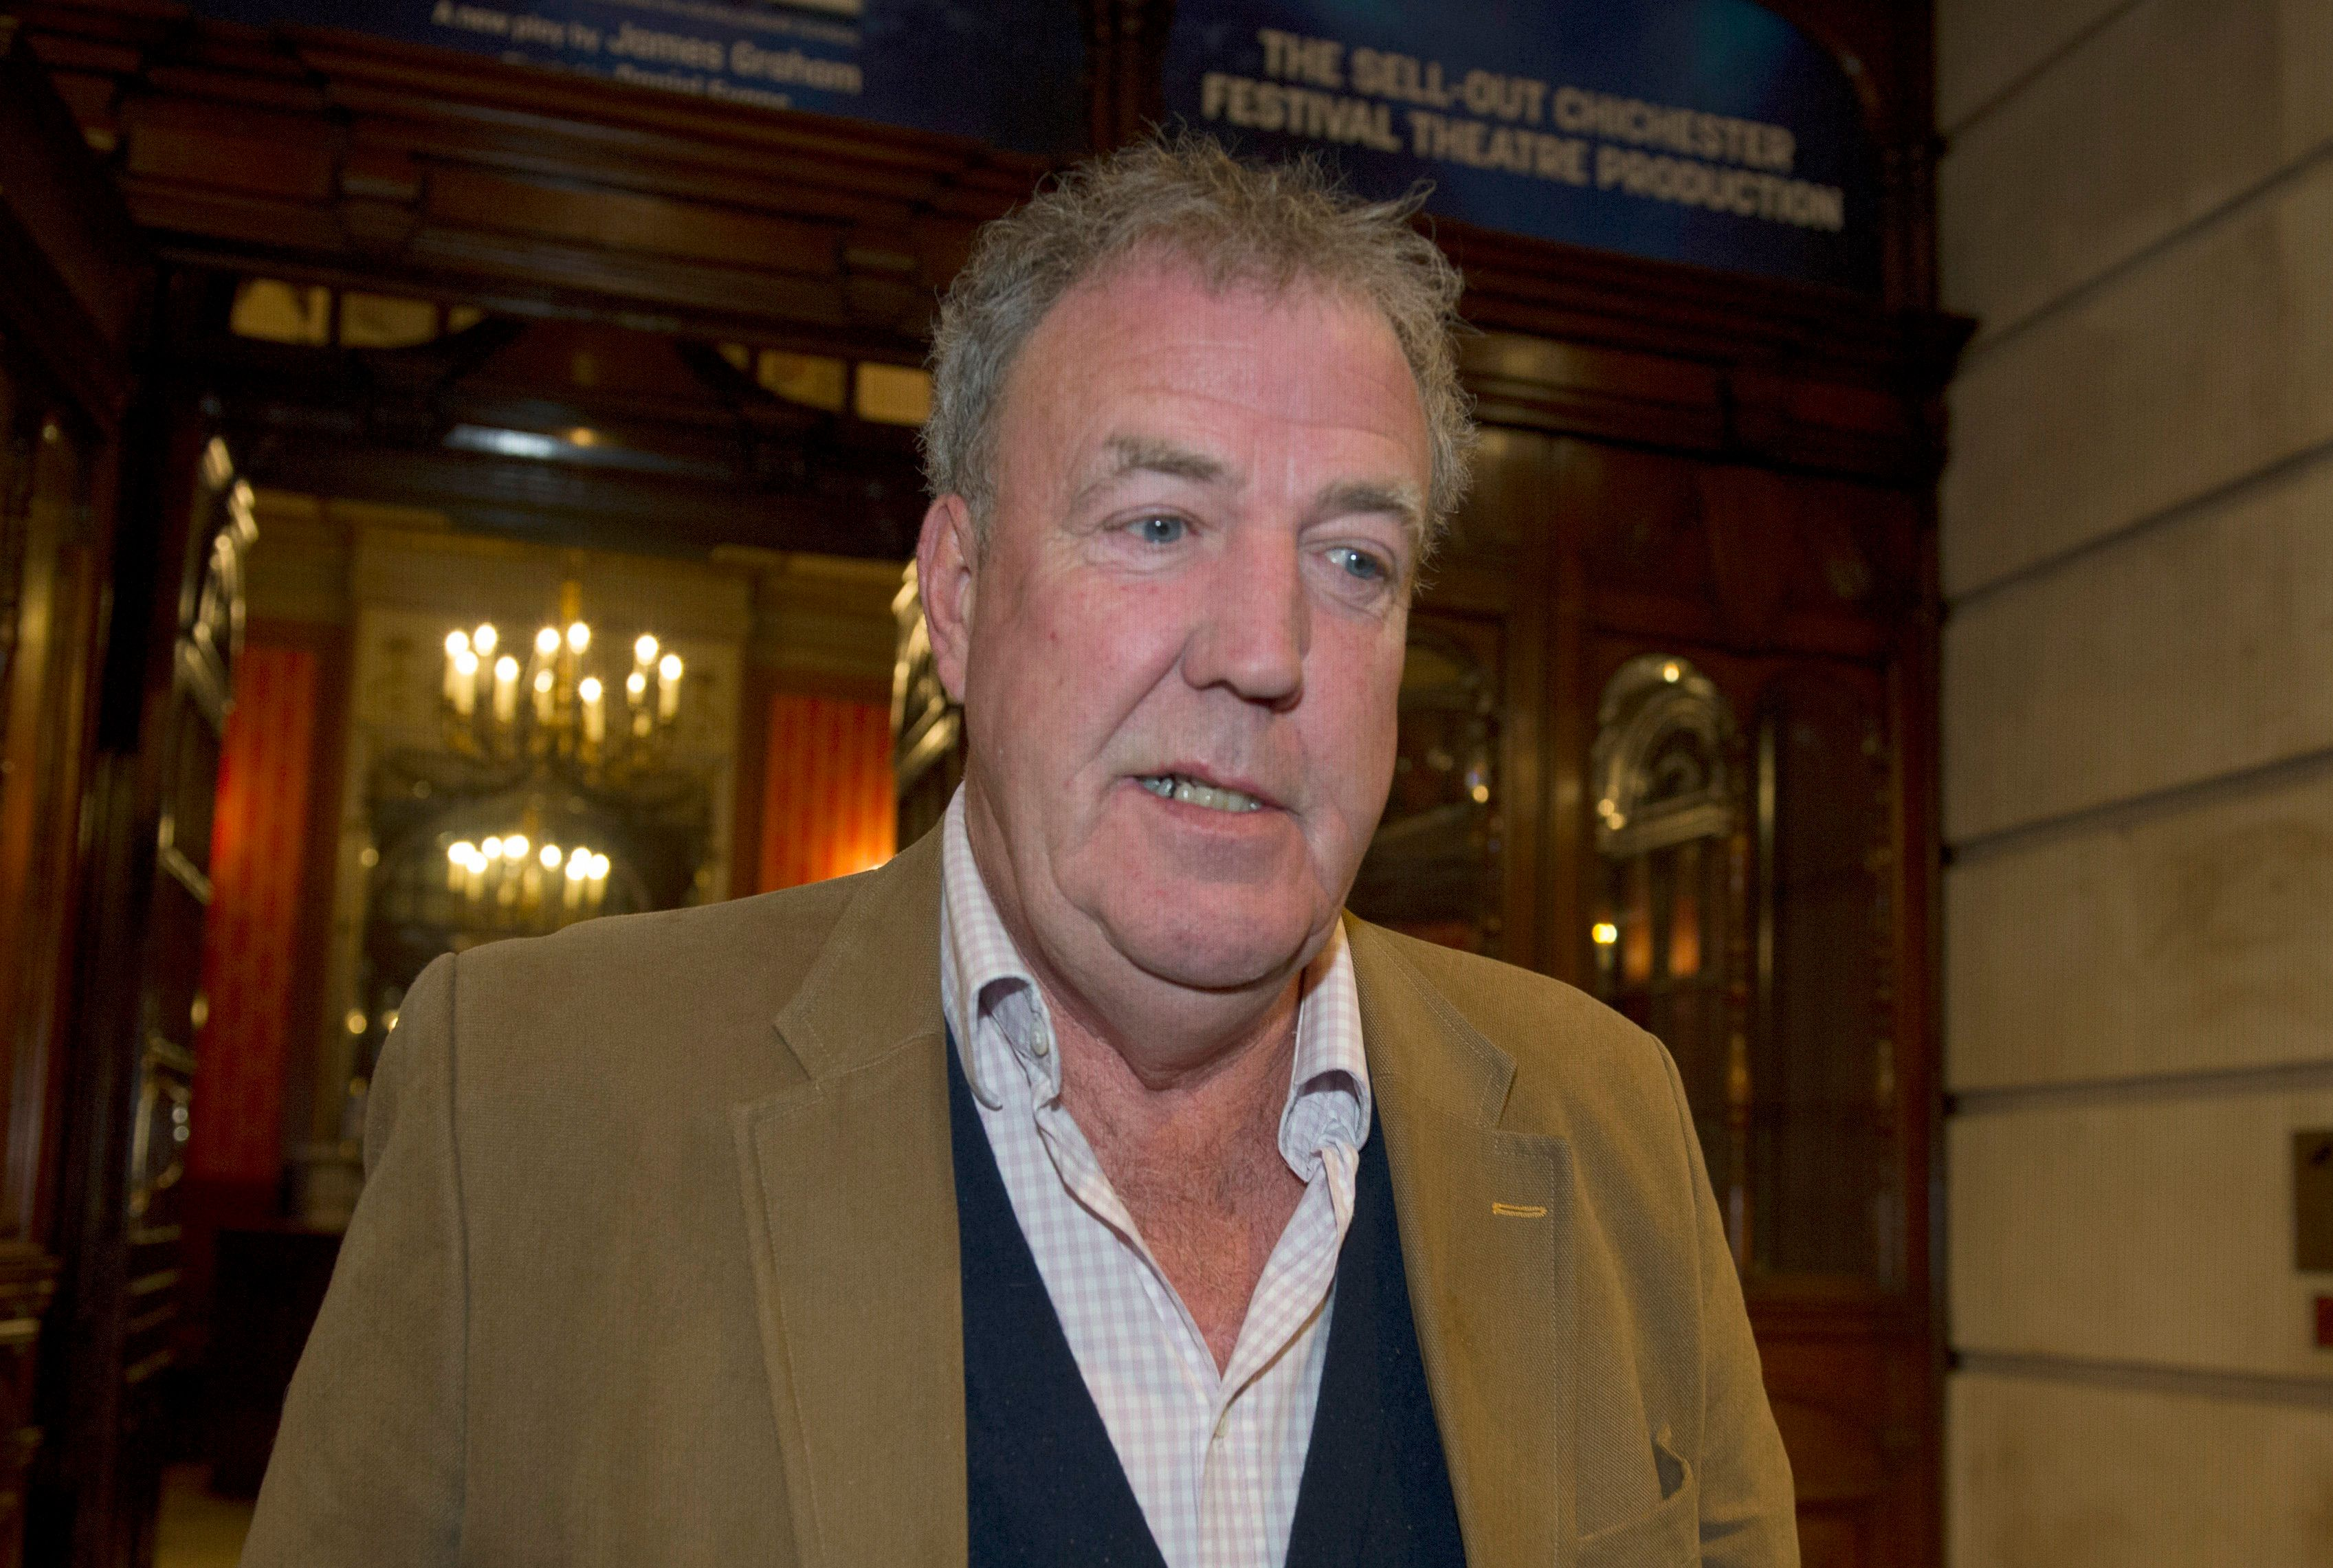 Jeremy Clarkson Announces Retirement From Studio-Based Car Shows